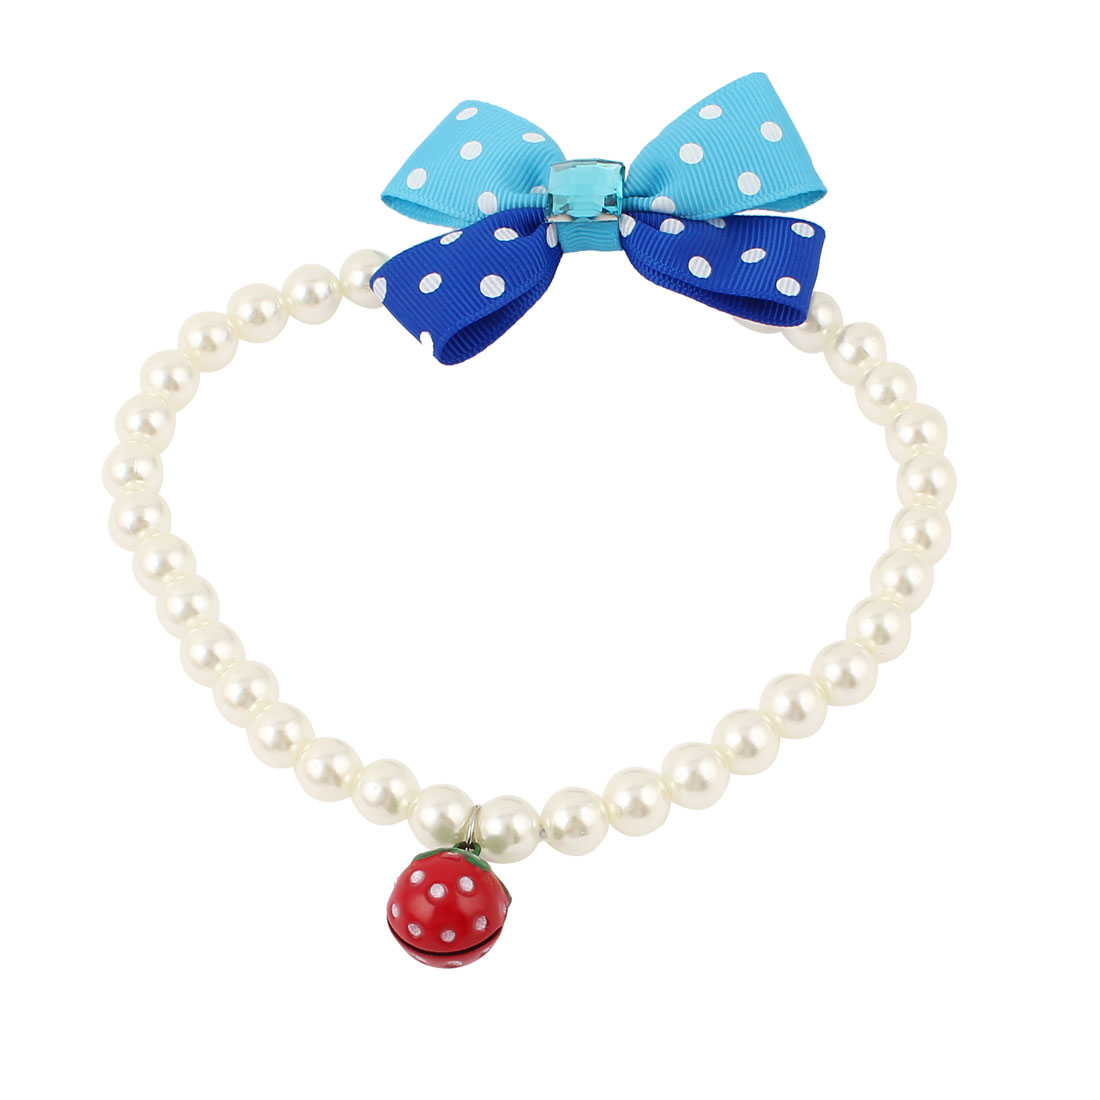 Metal Bell Pendant Bowknot Accent Pet Dog Plastic Beads Pearls Collar Necklace White L